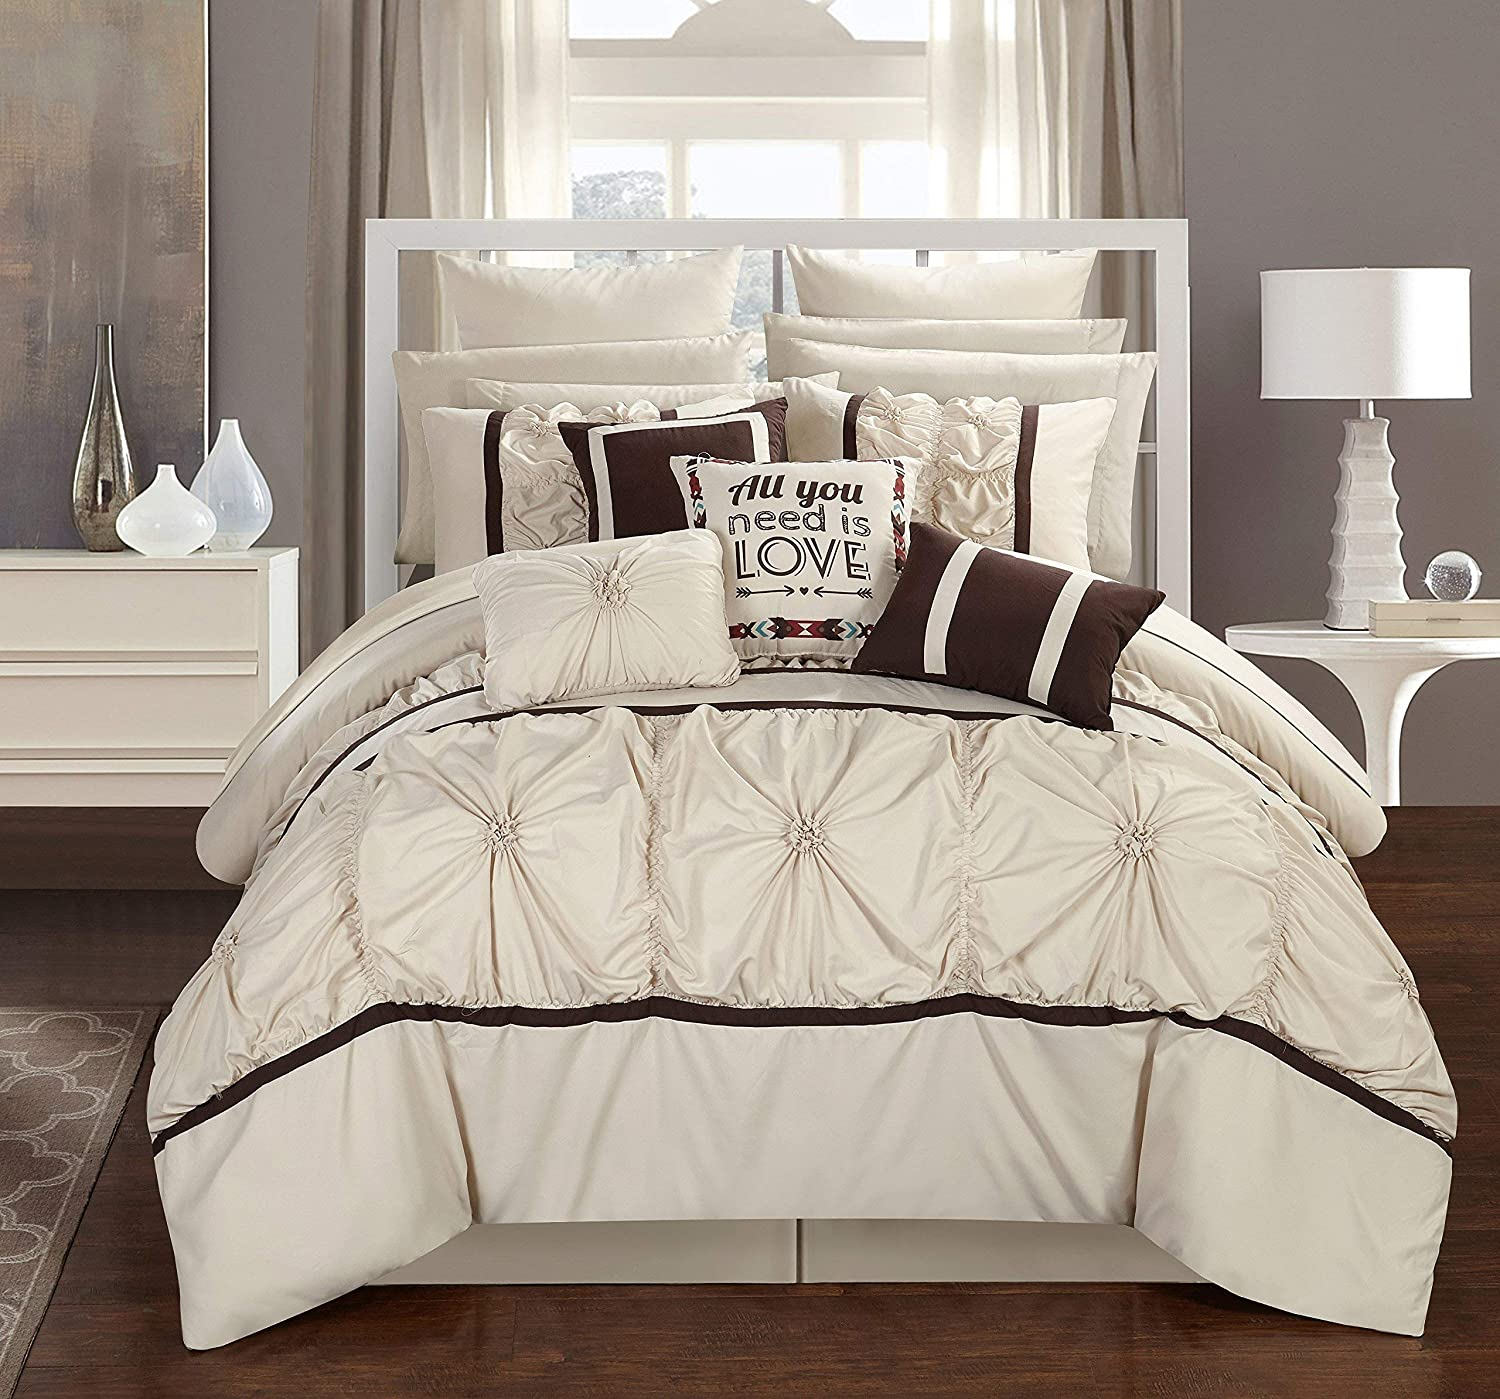 Chic Home Ashville 16 Piece Bed in a Bag Comforter Set, Queen, Off-White